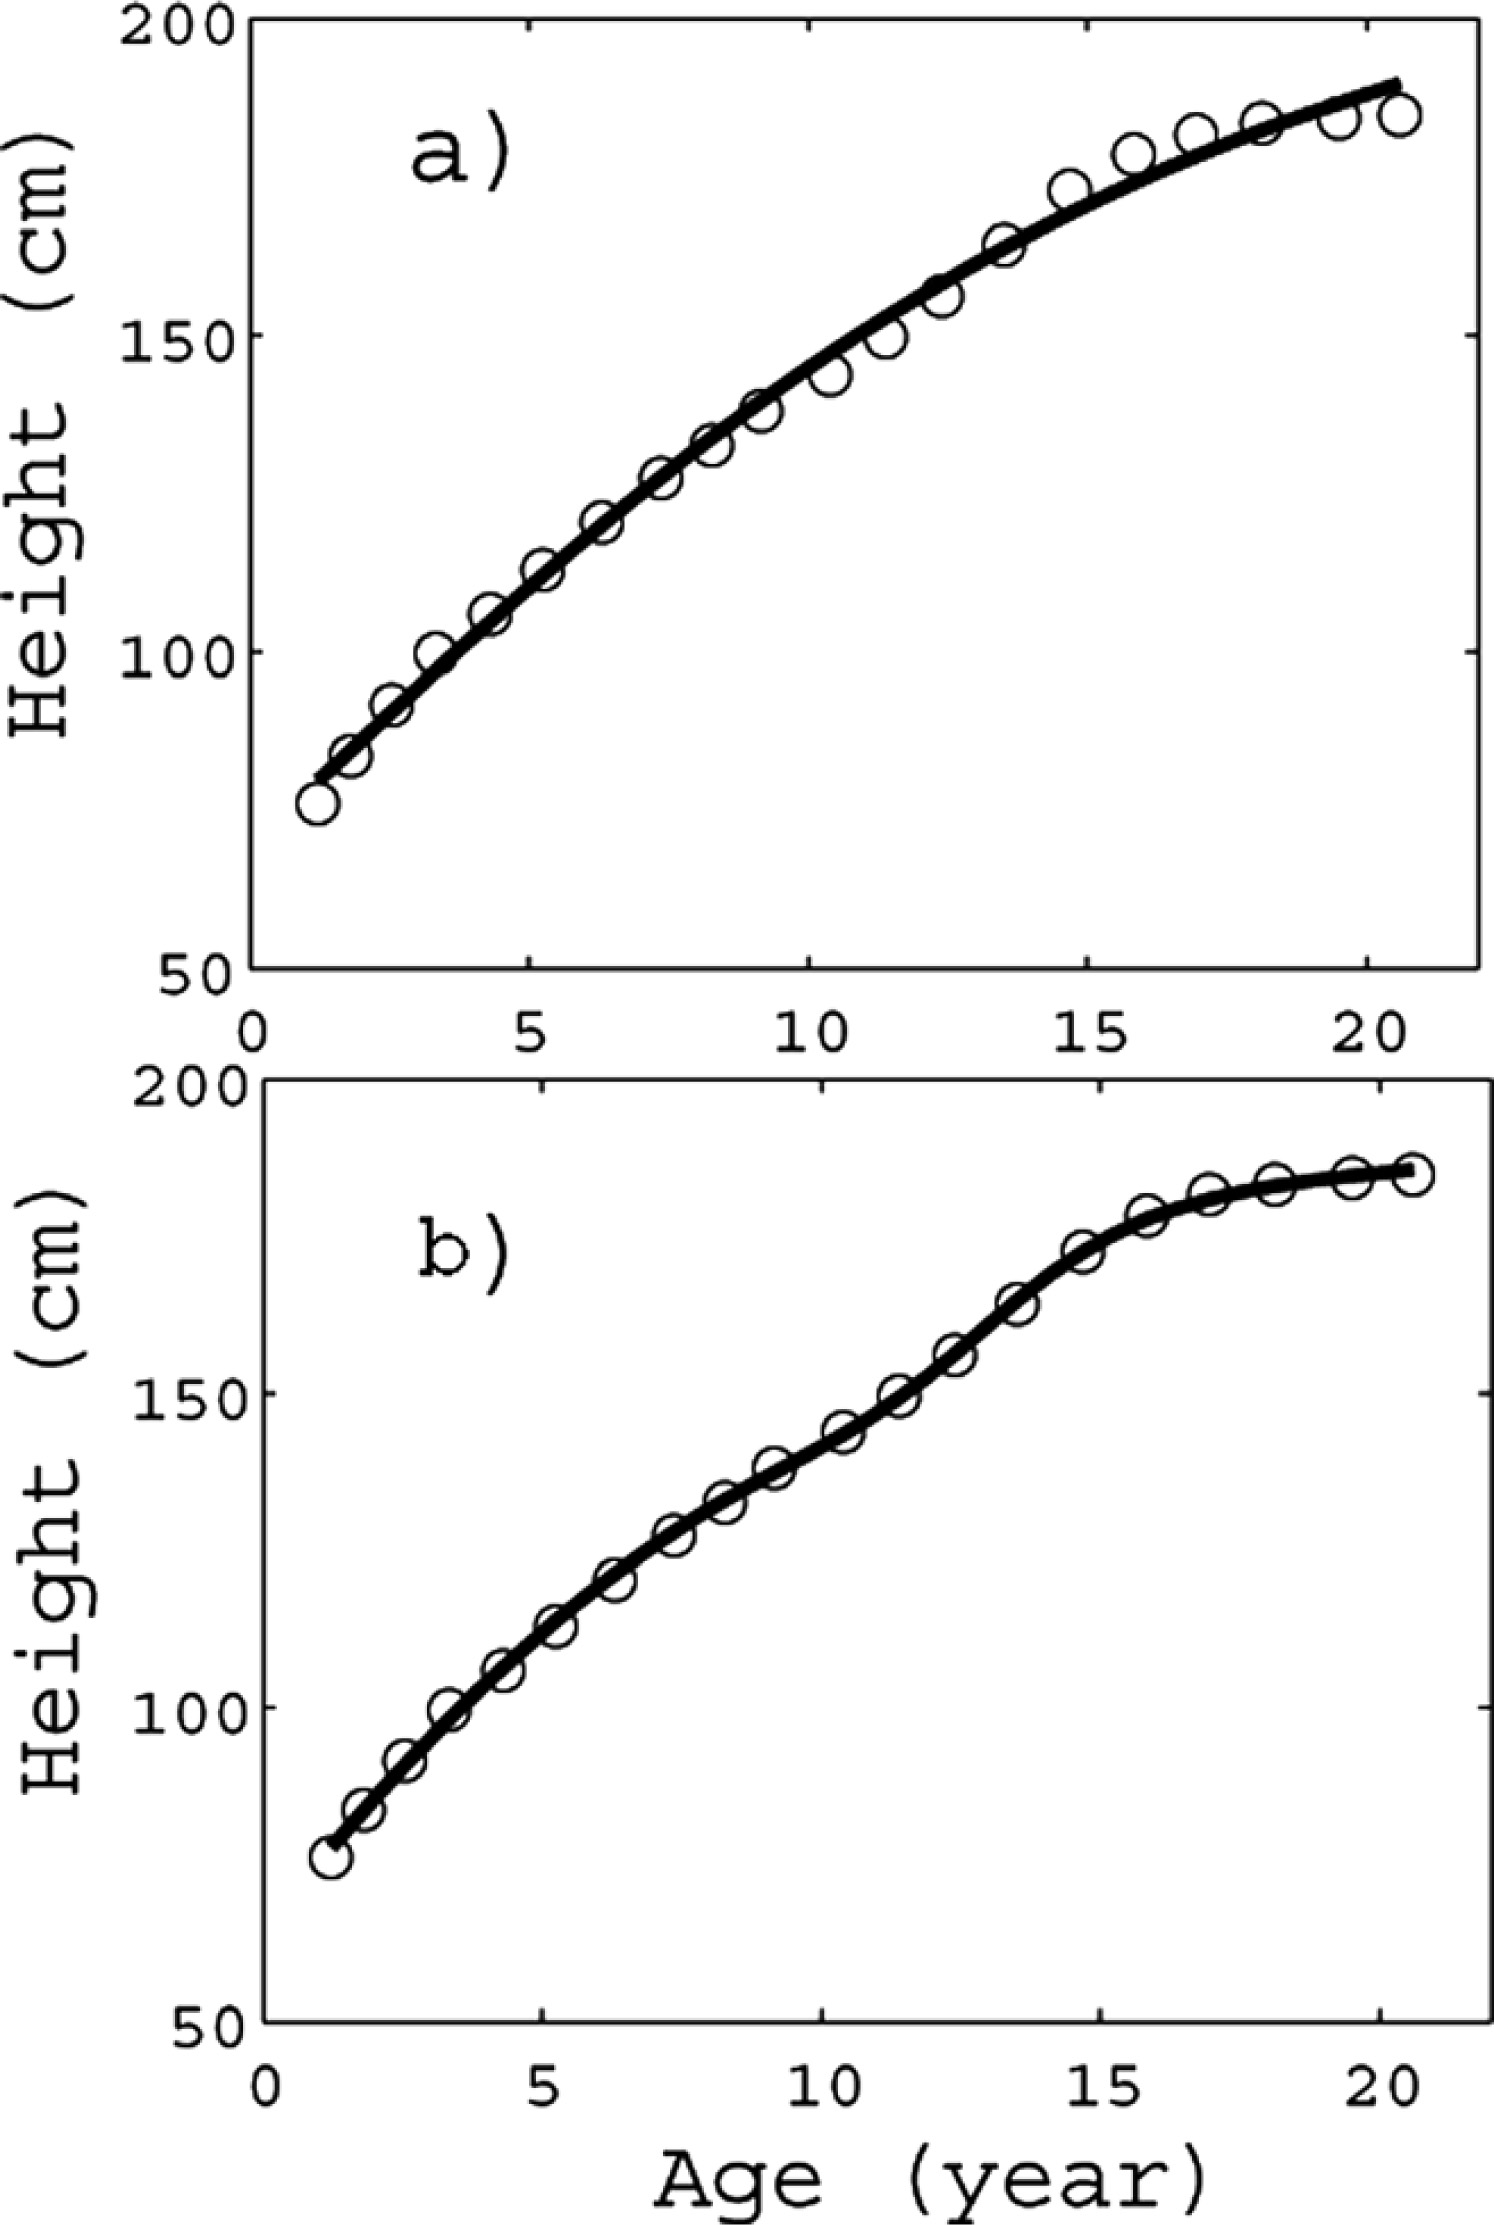 http://static-content.springer.com/image/art%3A10.1186%2F1742-4682-9-17/MediaObjects/12976_2011_Article_339_Fig1_HTML.jpg